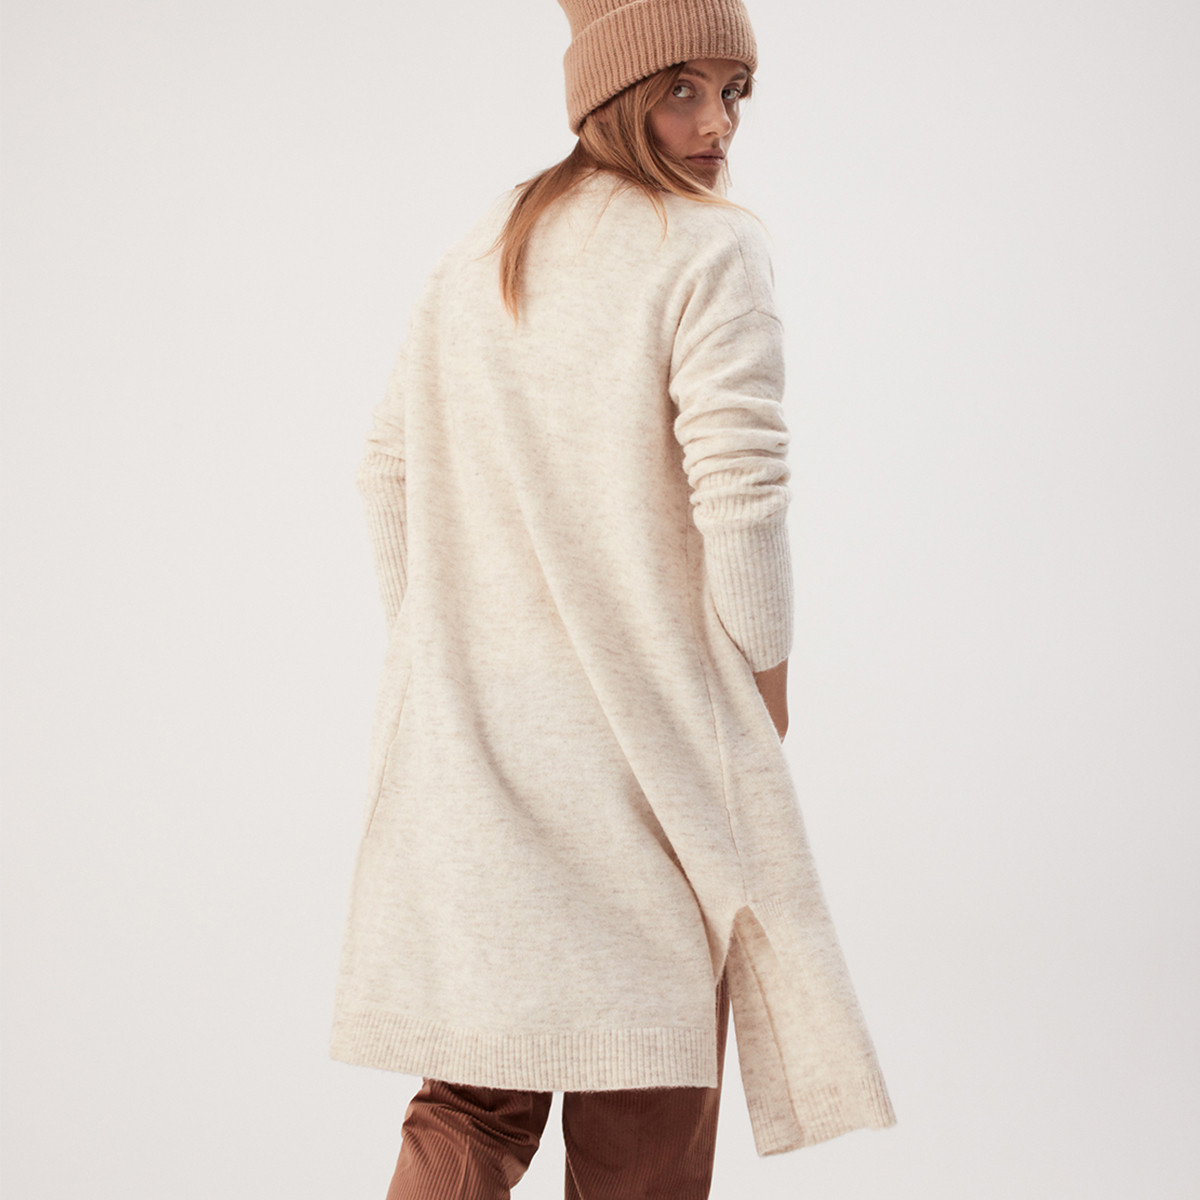 MATT-Winter-Dima-opus-Woman-Wool-Cardiga